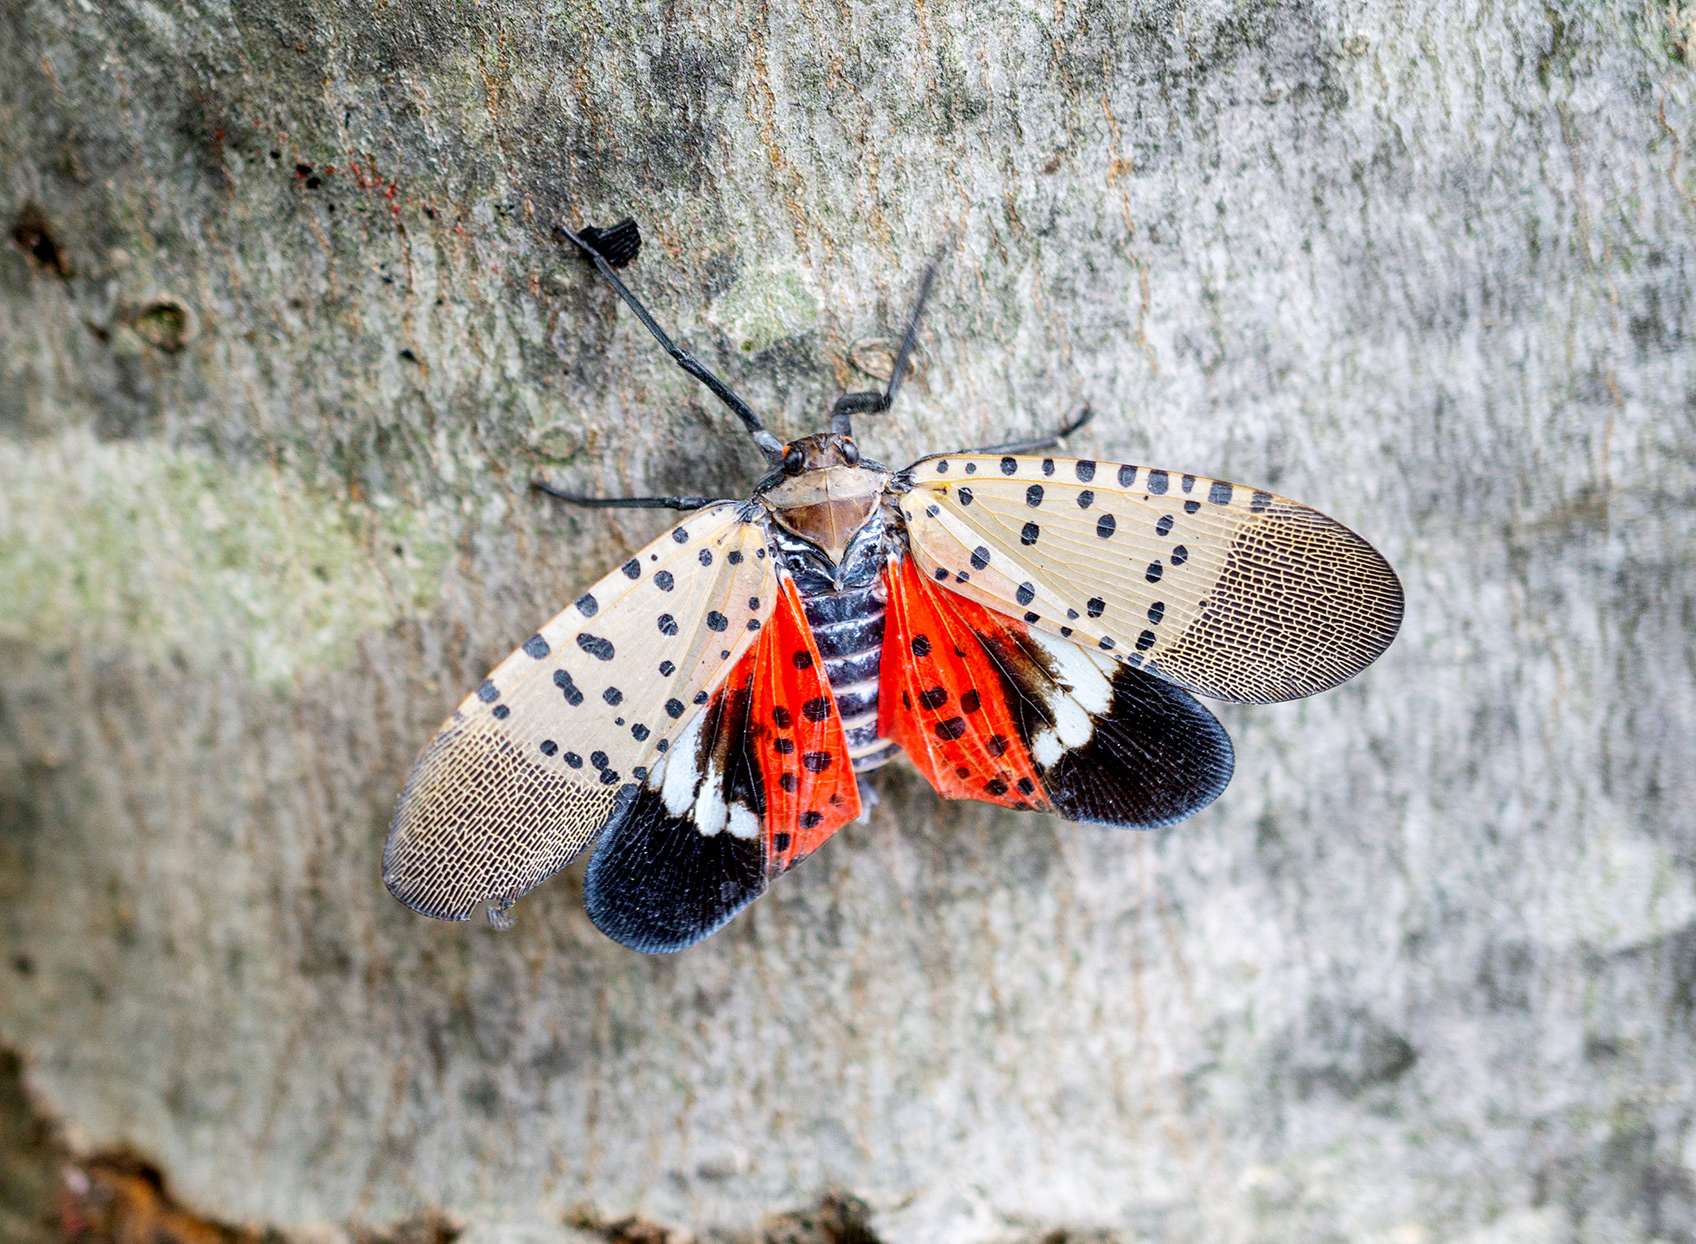 spotted lanternfly on maple tree